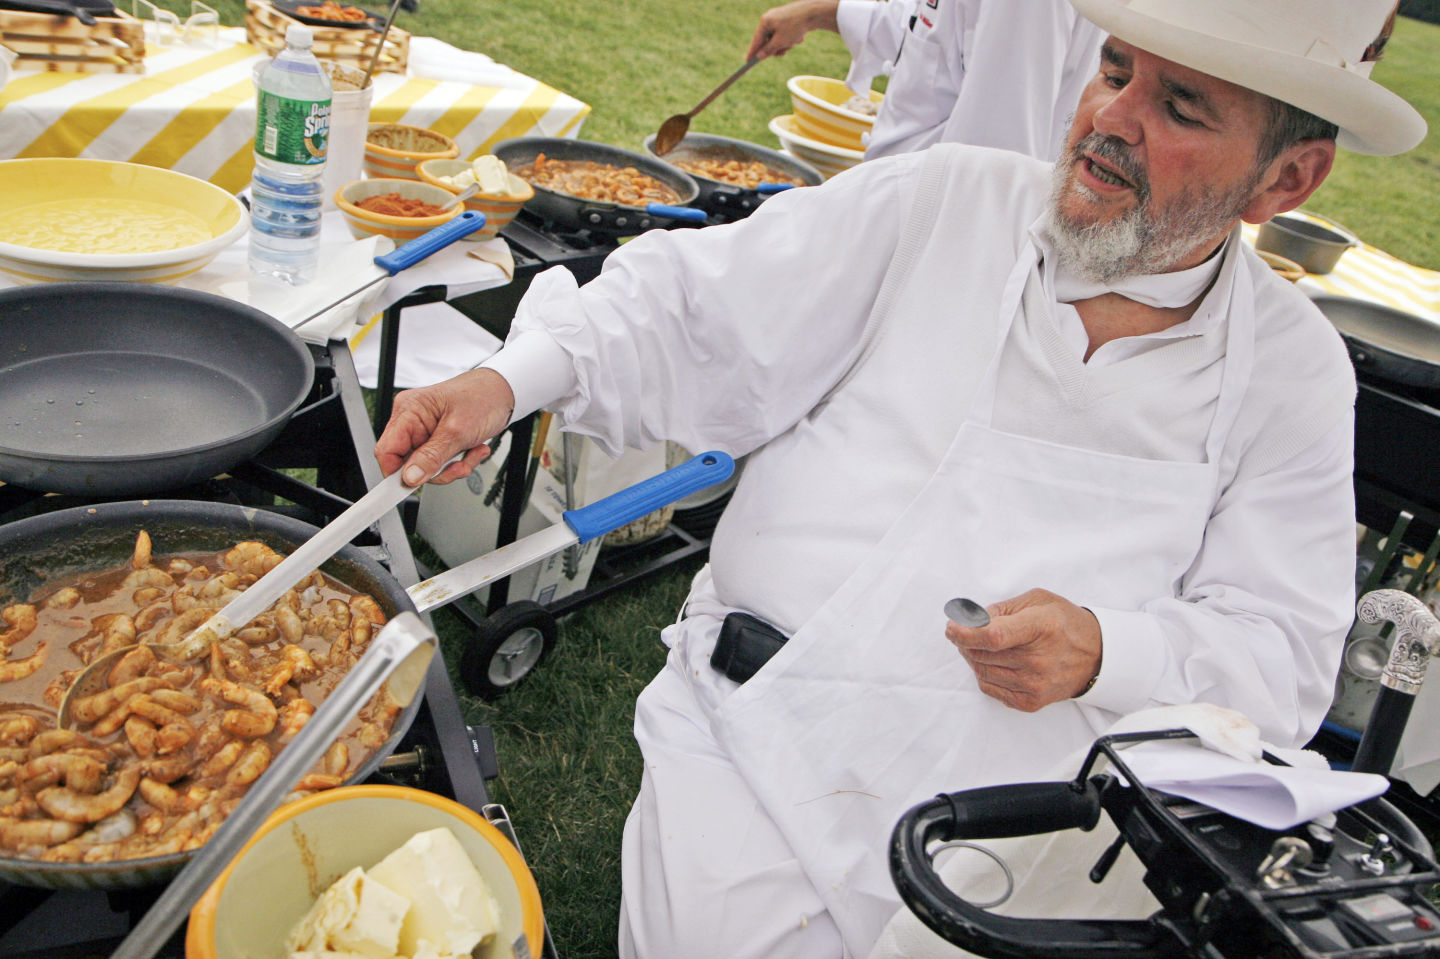 Remembering Paul Prudhomme, The Louisiana Chef Who 'Made Magic'